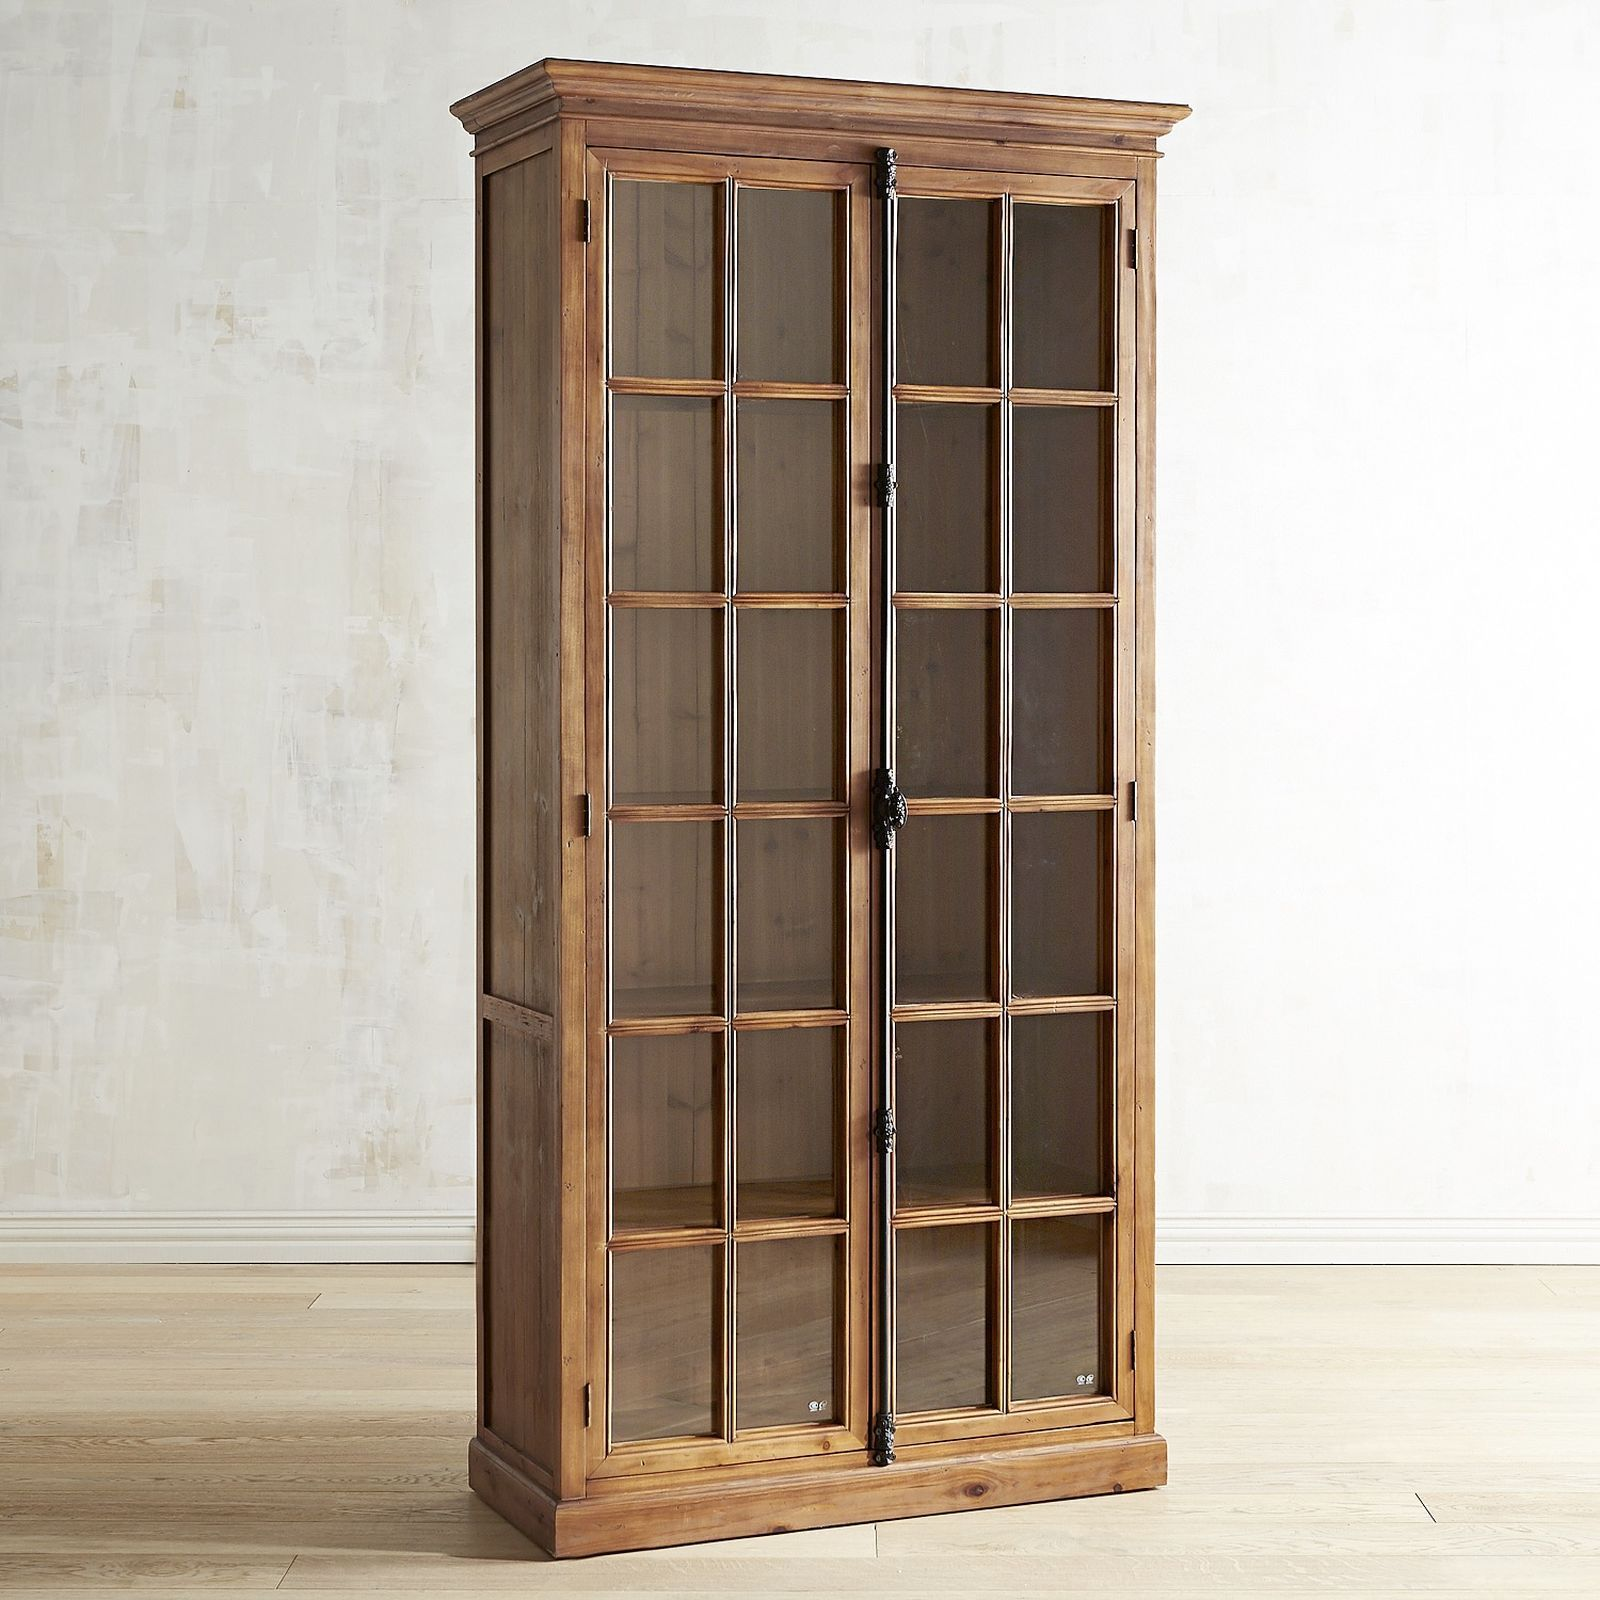 """Originating in 19th century Europe, the """"Cremone bolt"""" is a traditional casement-window locking device with a latch/handle mechanism. Featured on all our hand-hewn Cremone cabinetry, it's as beautiful as it is functional. Also featured: Brown wood frames with protracted crown molding, contrasting natural wood casements and tempered pane-glass windows. Over 8' tall, our cabinet houses five adjustable shelves."""